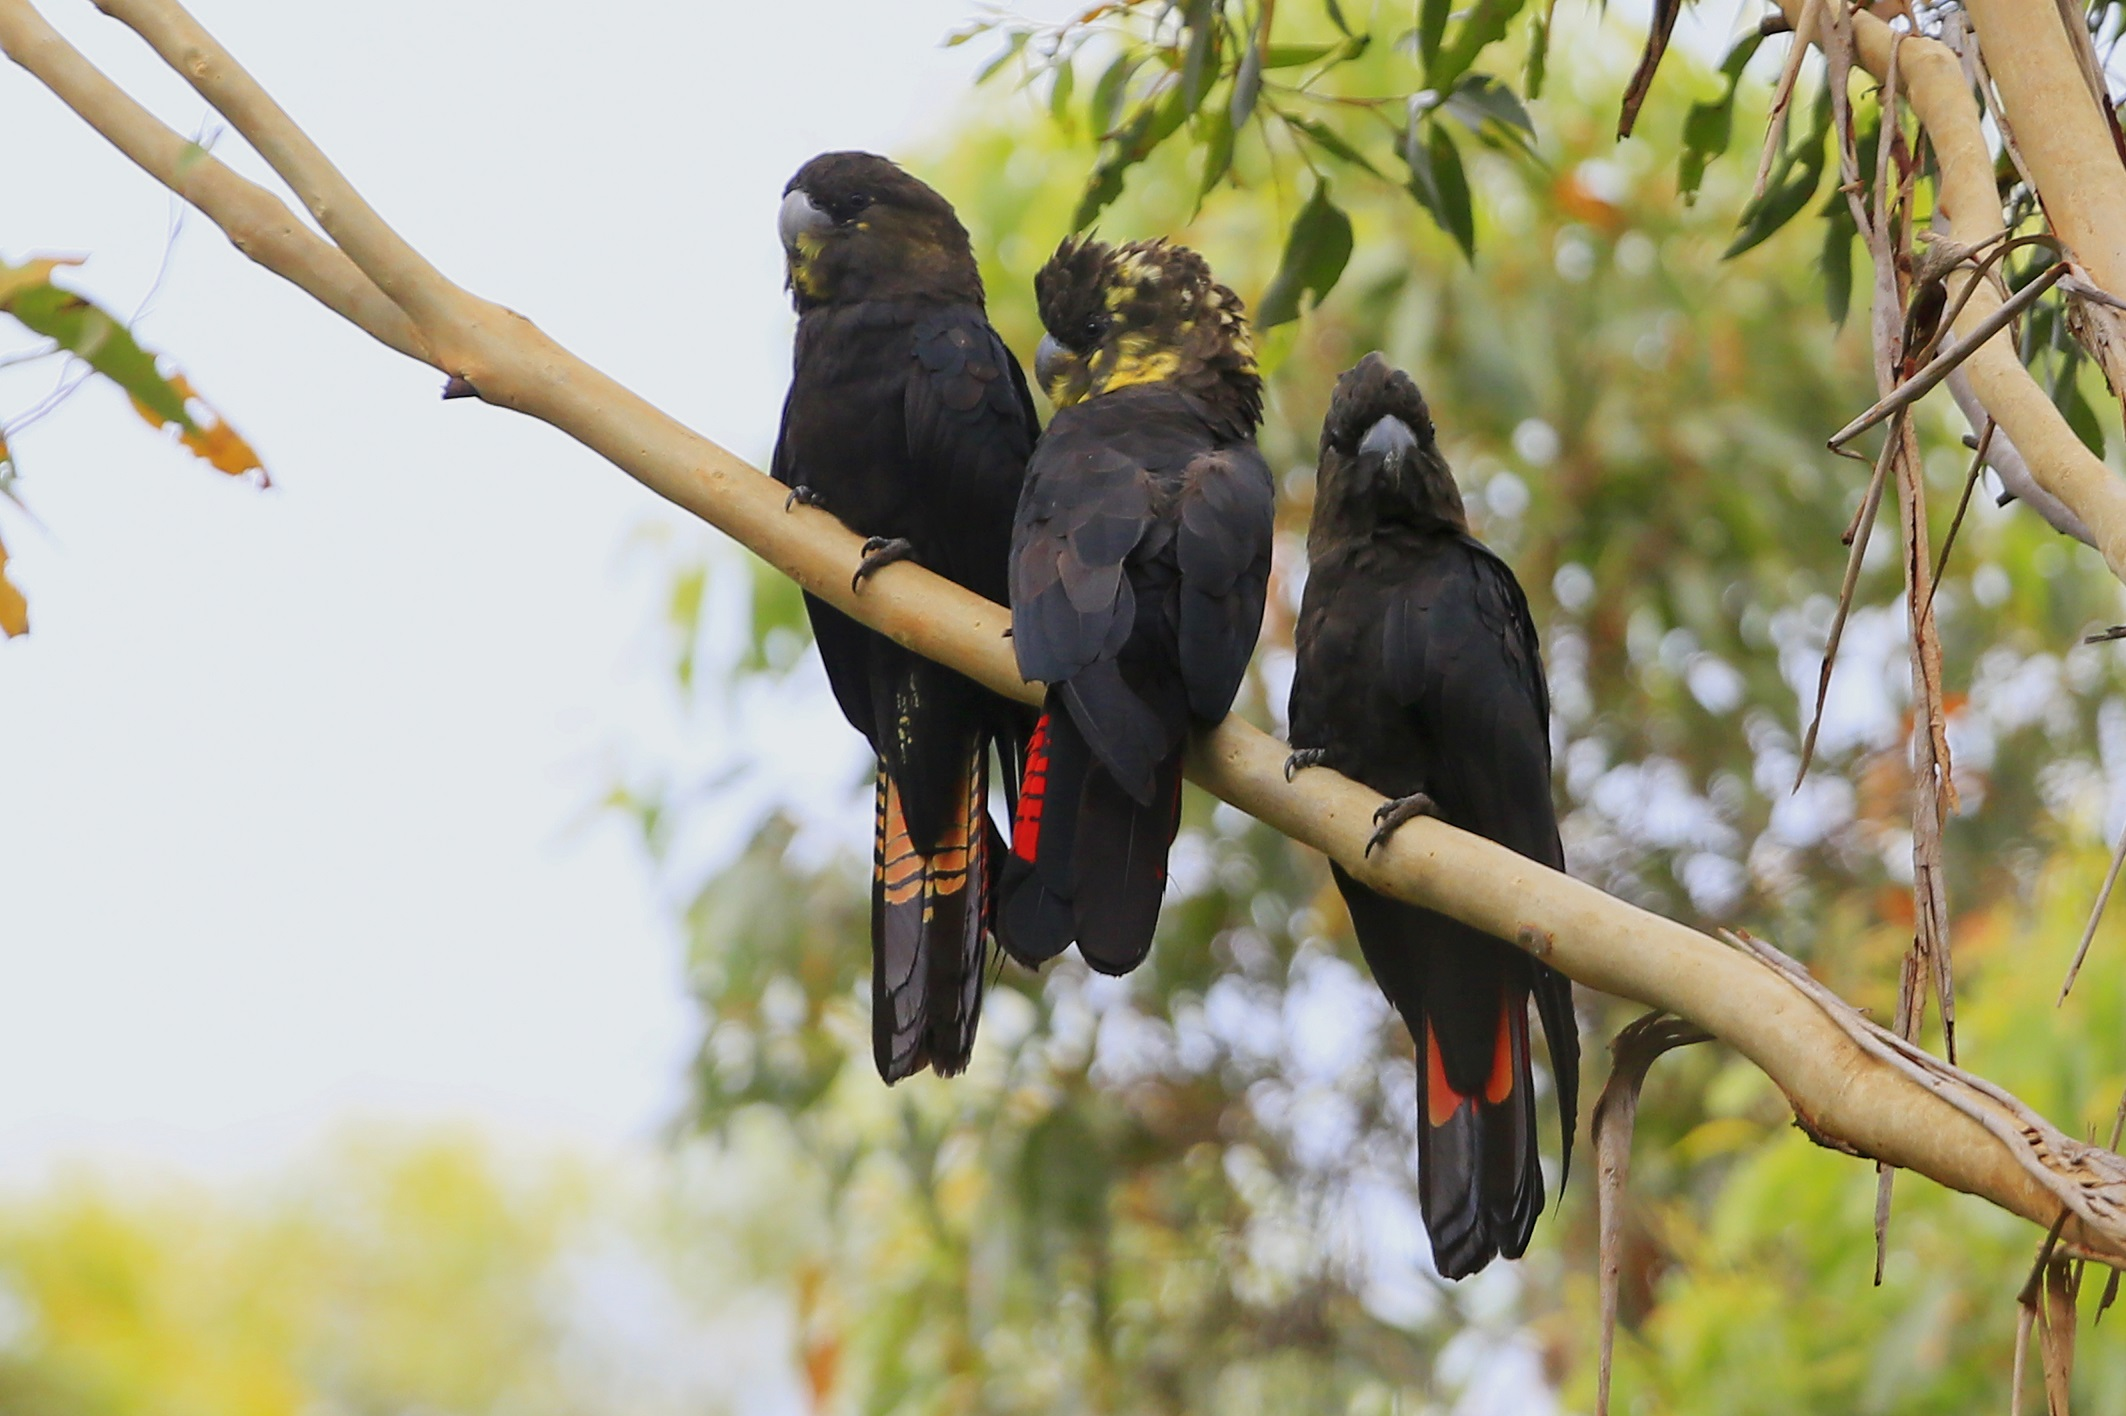 3 Glossy Black Cockatoo's on tree branch